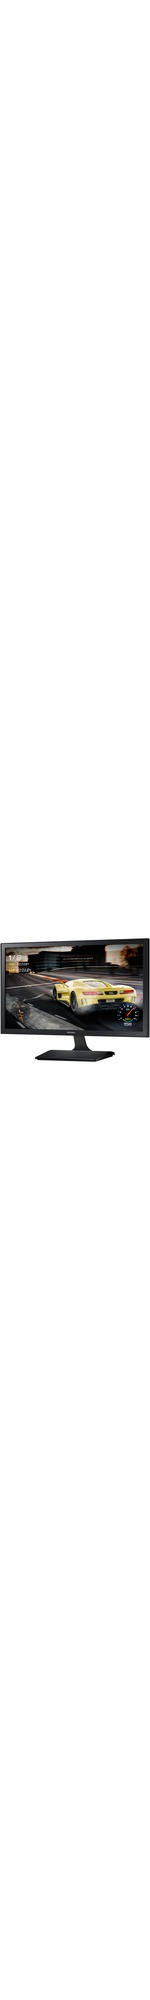 Samsung S27E330H 27And#34; LED Monitor - 16:9 - 1 ms